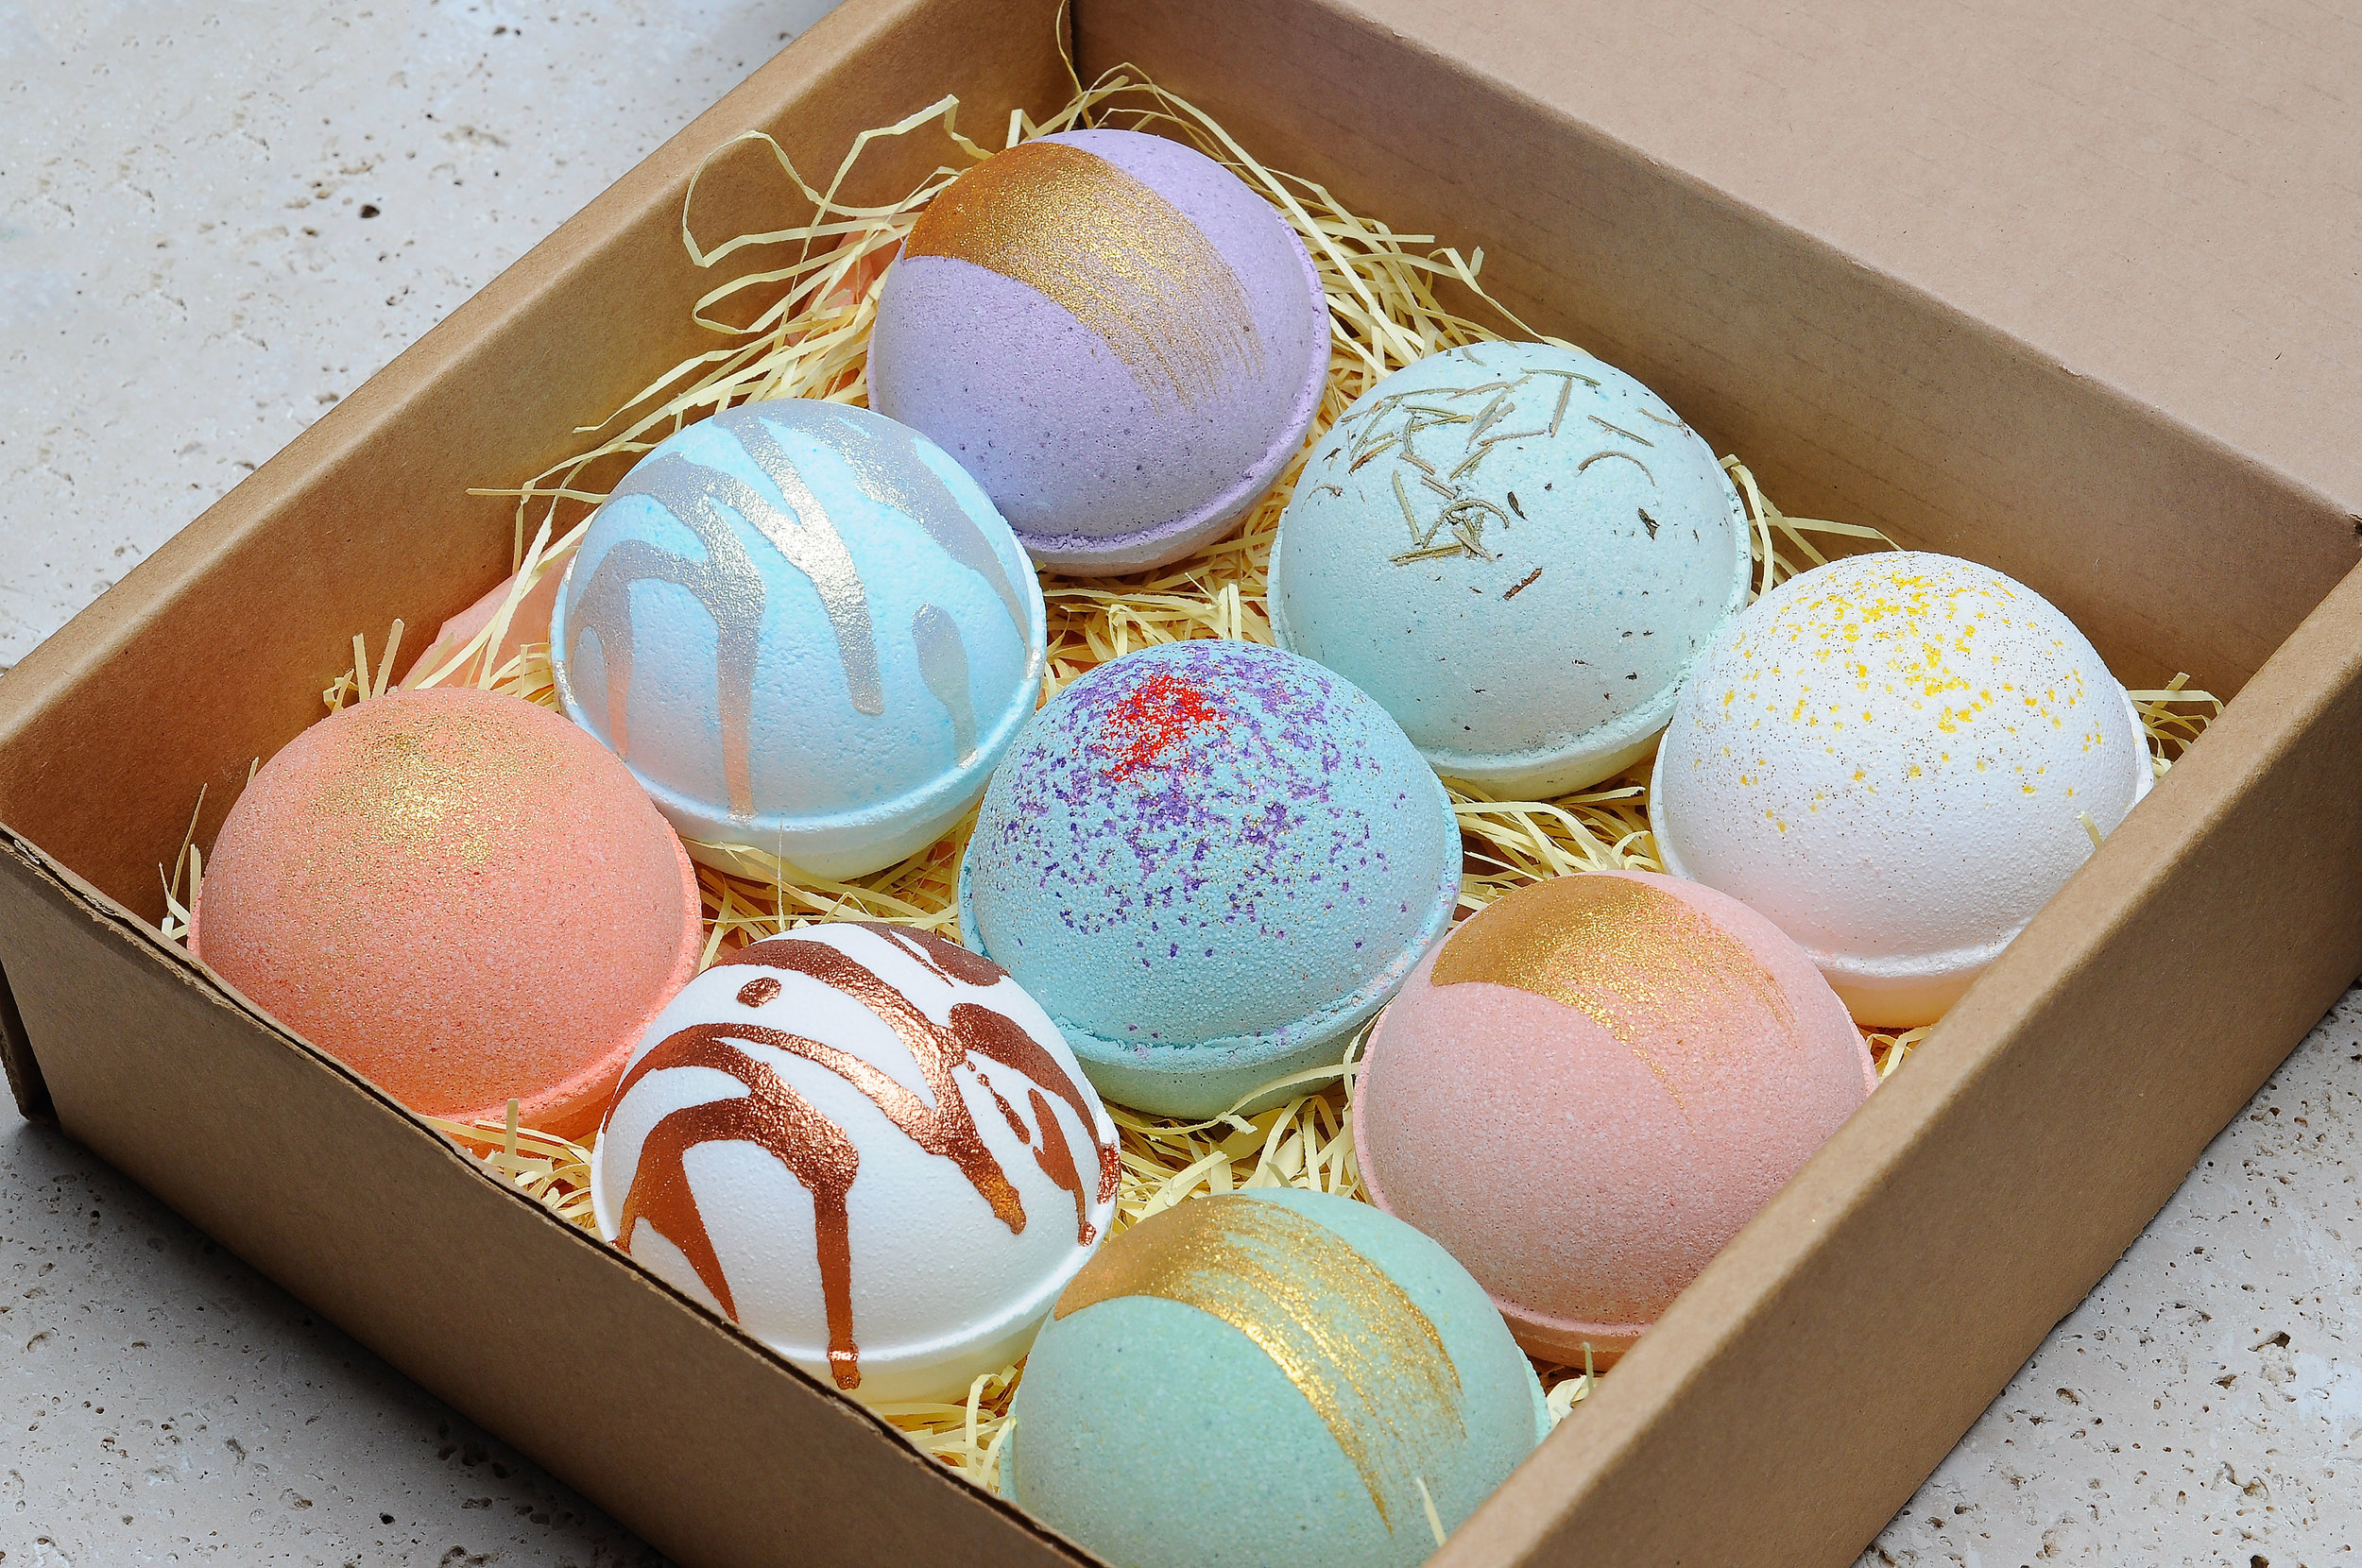 Latika Bath Bombs